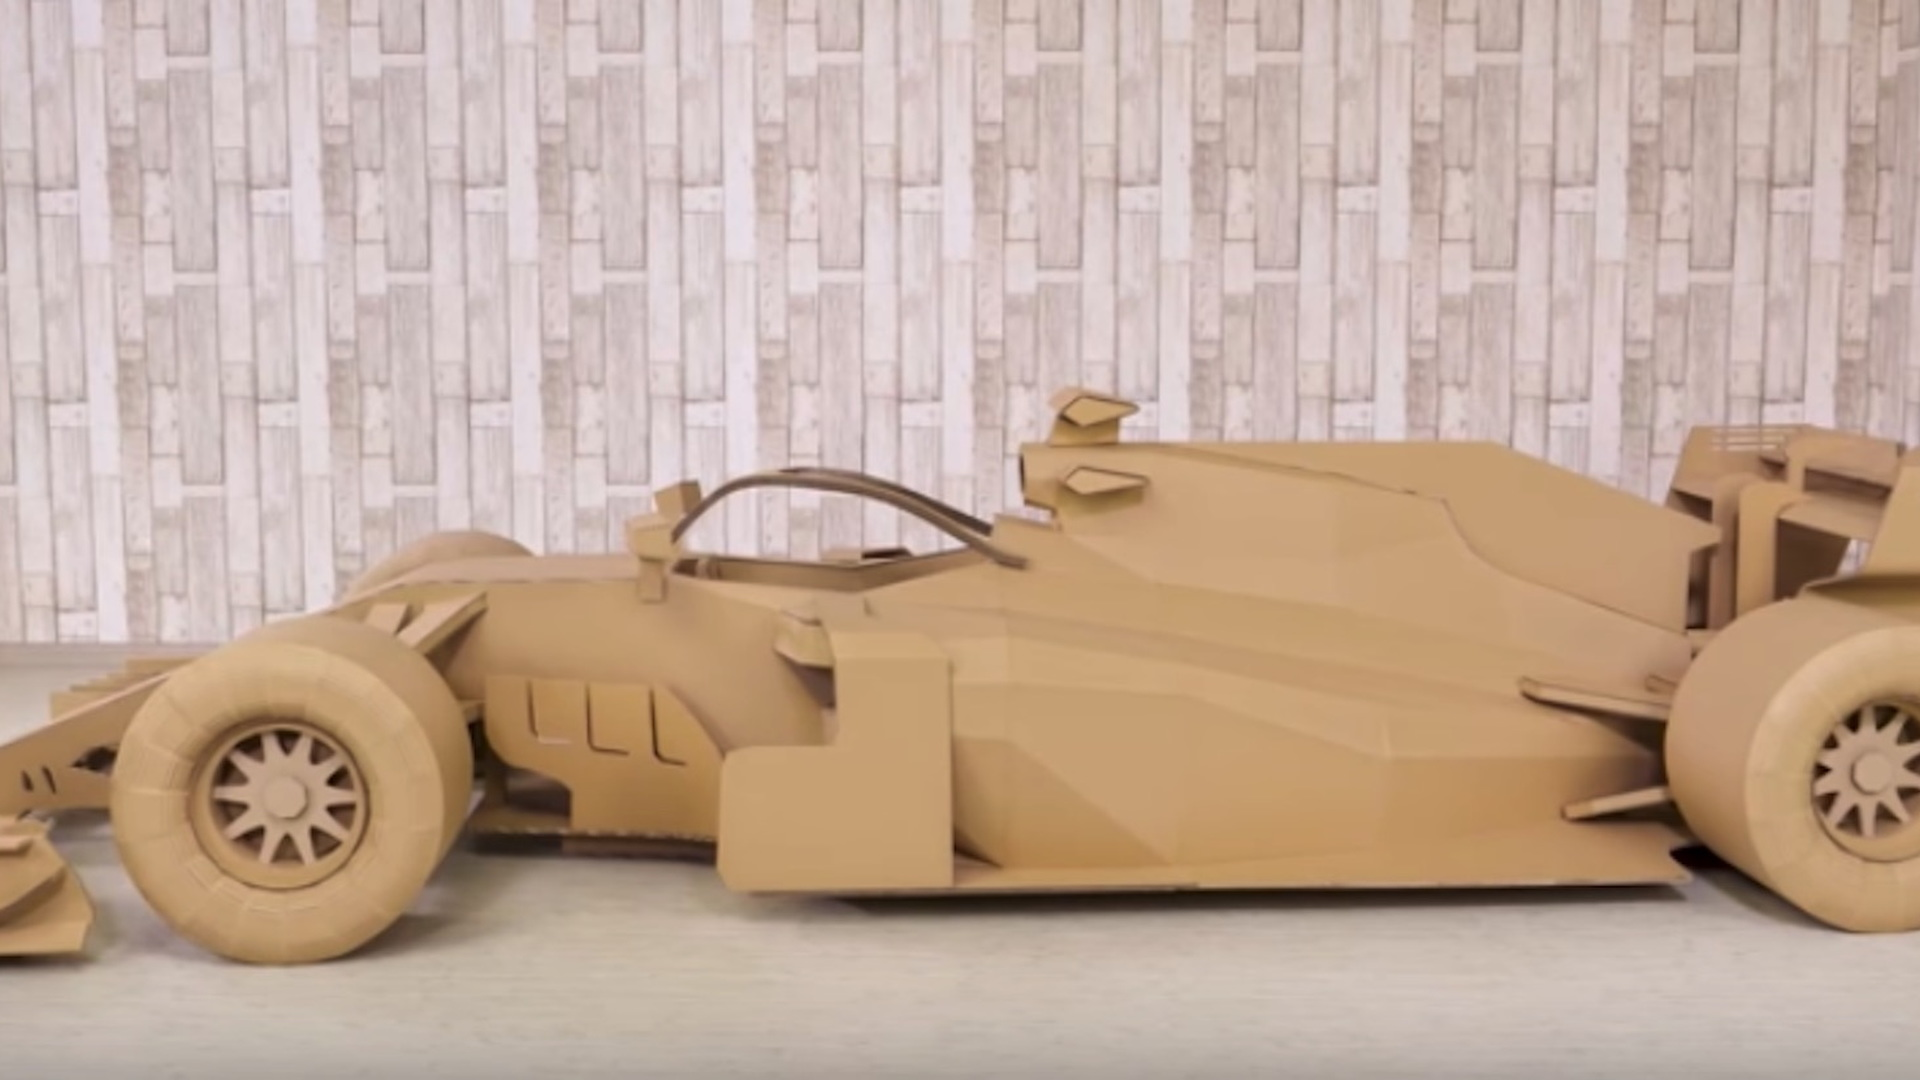 F1 car made from cardboard